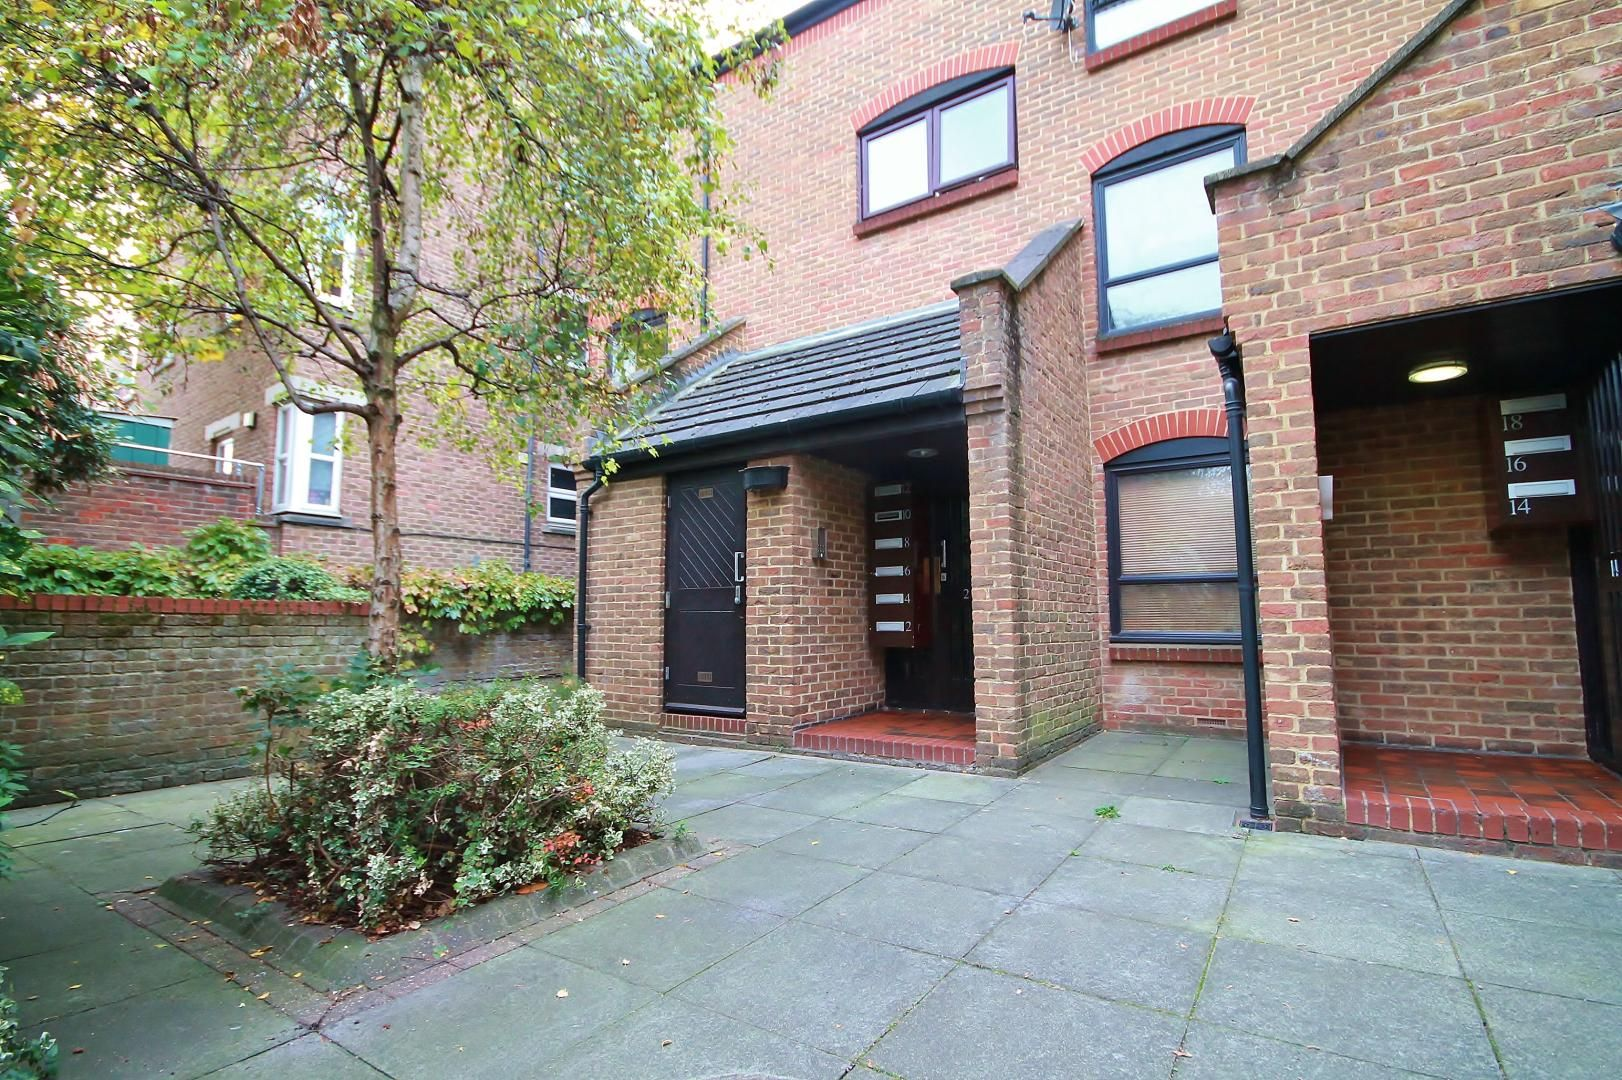 1 bed flat for sale in Manchester Road - Property Image 1